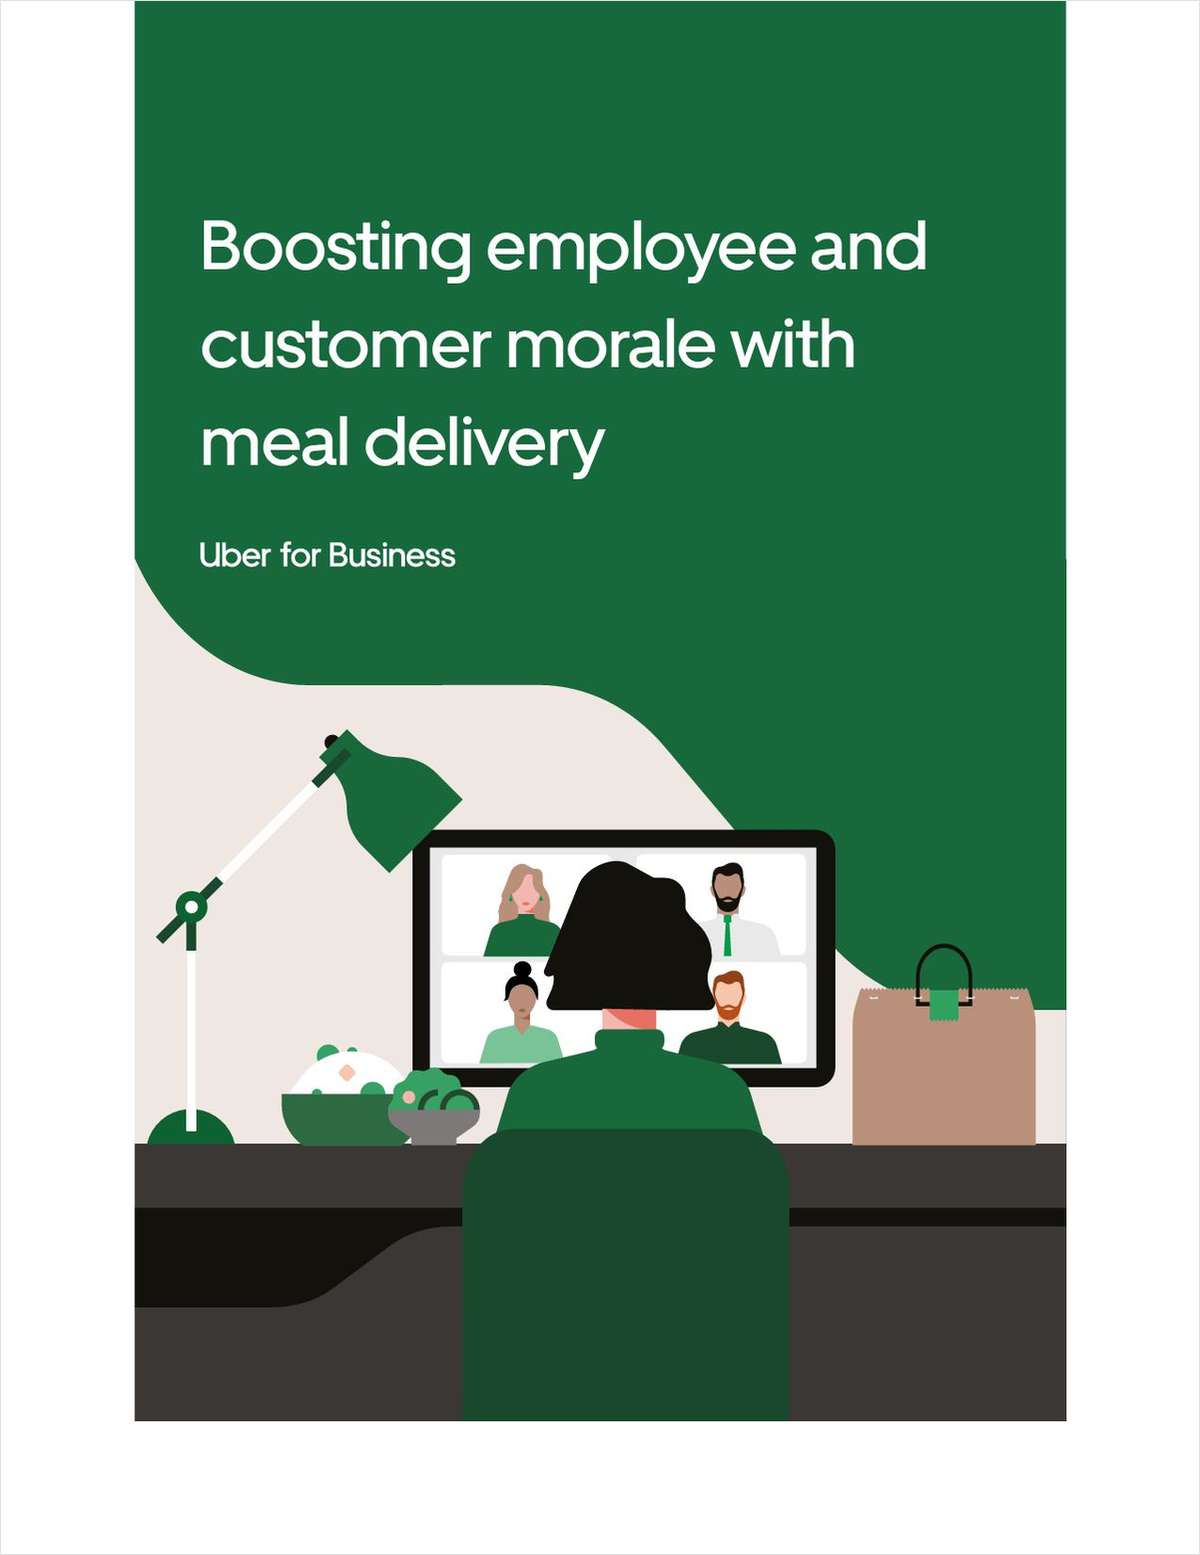 Boosting employee and customer morale with meal delivery